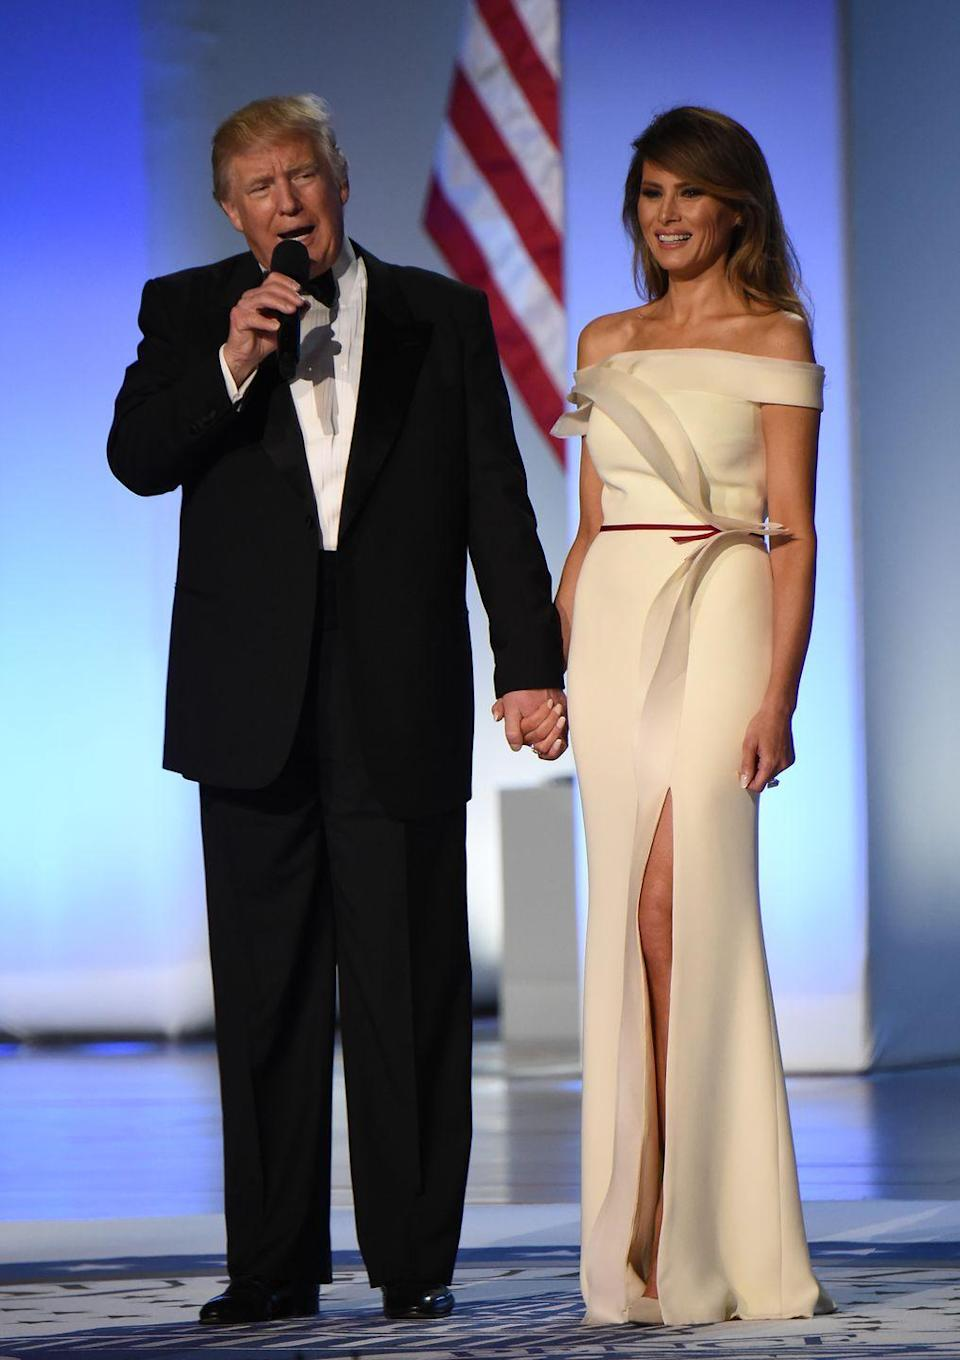 """<p>If a designer gifts an outfit to the president or first lady, it can only be worn once and has to be donated afterwards. For example, <a href=""""https://www.washingtonpost.com/news/reliable-source/wp/2017/10/20/melania-trump-donates-her-inaugural-ball-gown-to-the-smithsonian/"""" rel=""""nofollow noopener"""" target=""""_blank"""" data-ylk=""""slk:Melania Trump"""" class=""""link rapid-noclick-resp"""">Melania Trump</a> and <a href=""""https://americanhistory.si.edu/press/releases/smithsonian-accepts-michelle-obama%E2%80%99s-inaugural-ball-gown"""" rel=""""nofollow noopener"""" target=""""_blank"""" data-ylk=""""slk:Michelle Obama"""" class=""""link rapid-noclick-resp"""">Michelle Obama</a> both donated their inauguration gowns to the Smithsonian. Of course, first ladies are allowed to purchase designer clothing for themselves, but they're expected to pay full price just like anyone else.</p>"""